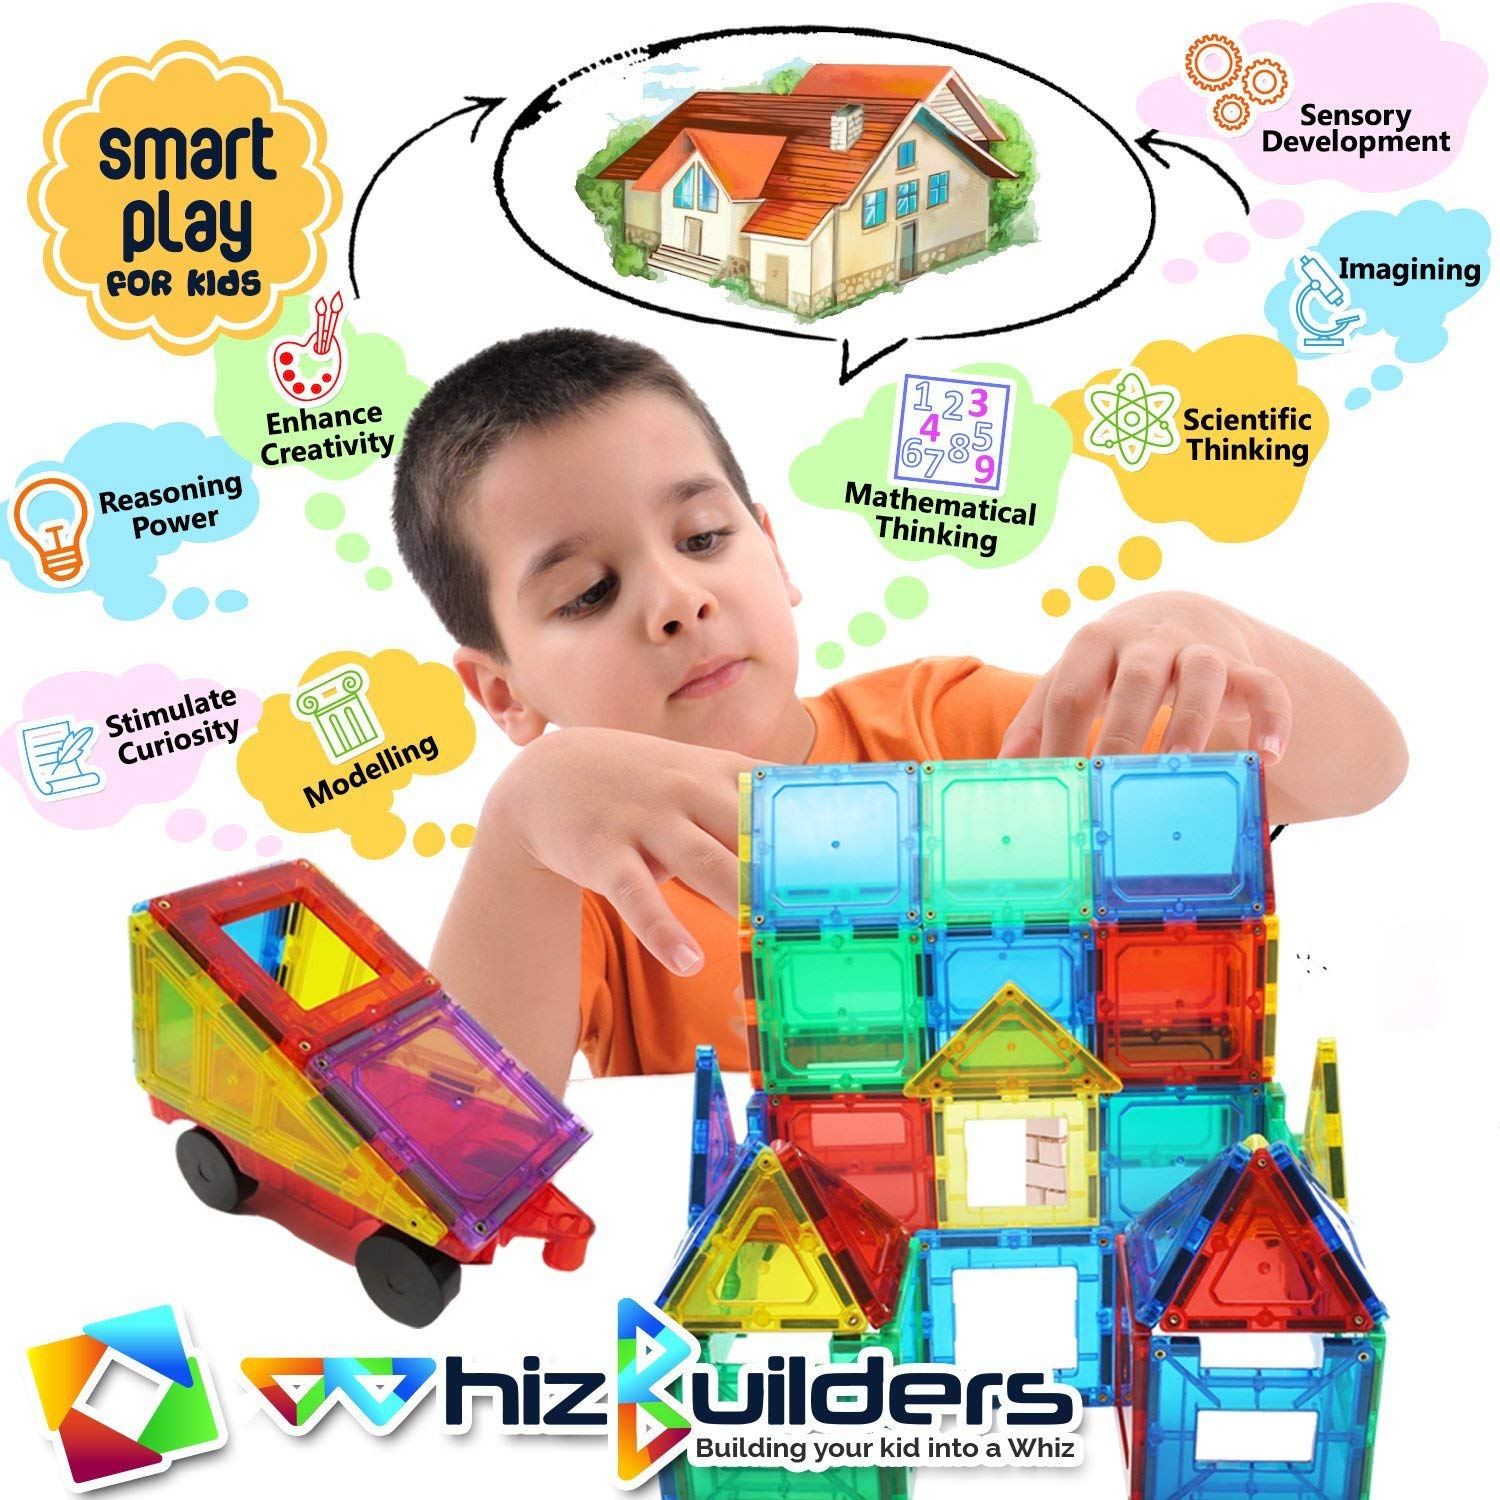 Magnetic Building Tiles Toys Set - Tiles Block Toy Kit for Kids - STEM Educational Construction Stacking Shapes - 60 Pieces by WhizBuilders (Image #6)